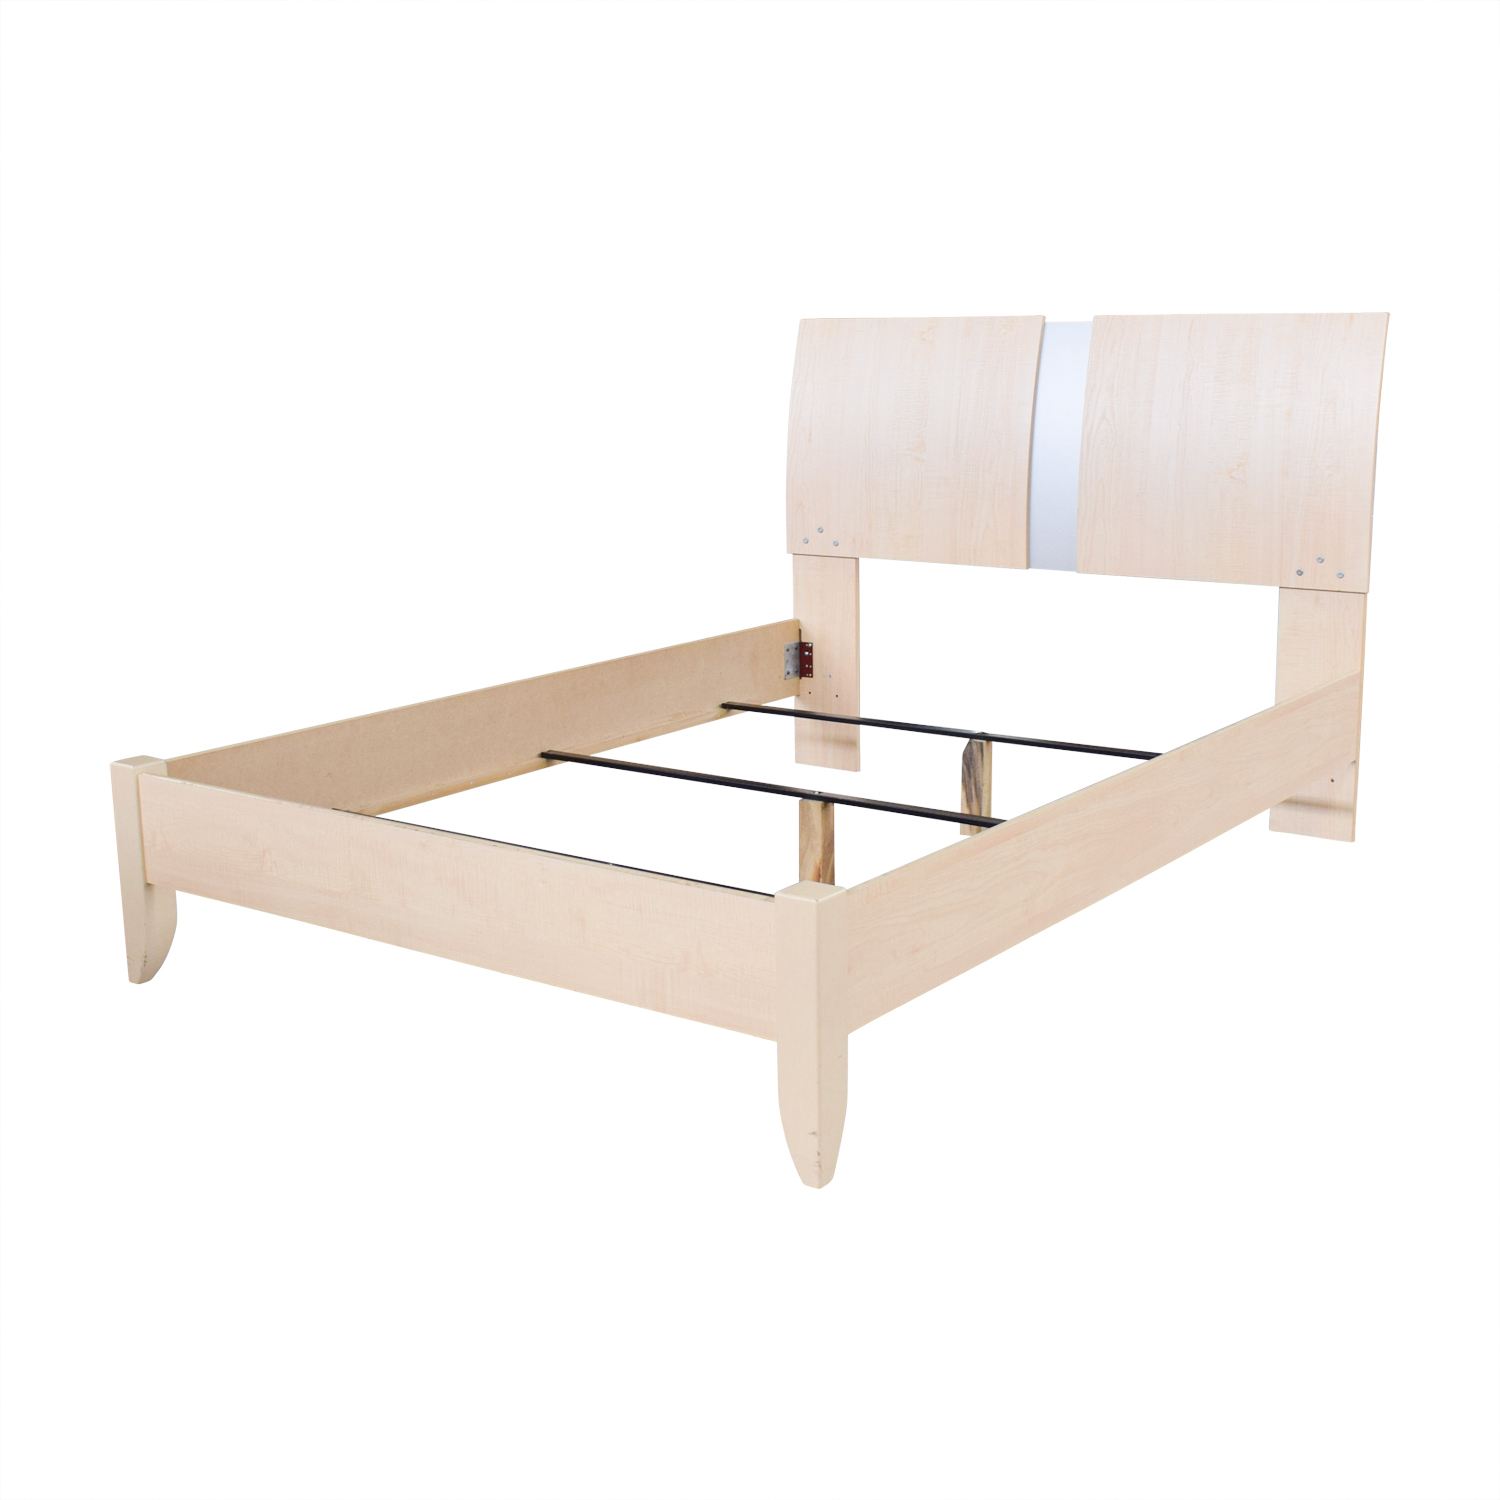 buy Ashley Furniture Ashley Furniture Natural Wood and Chrome Queen Bed Frame online